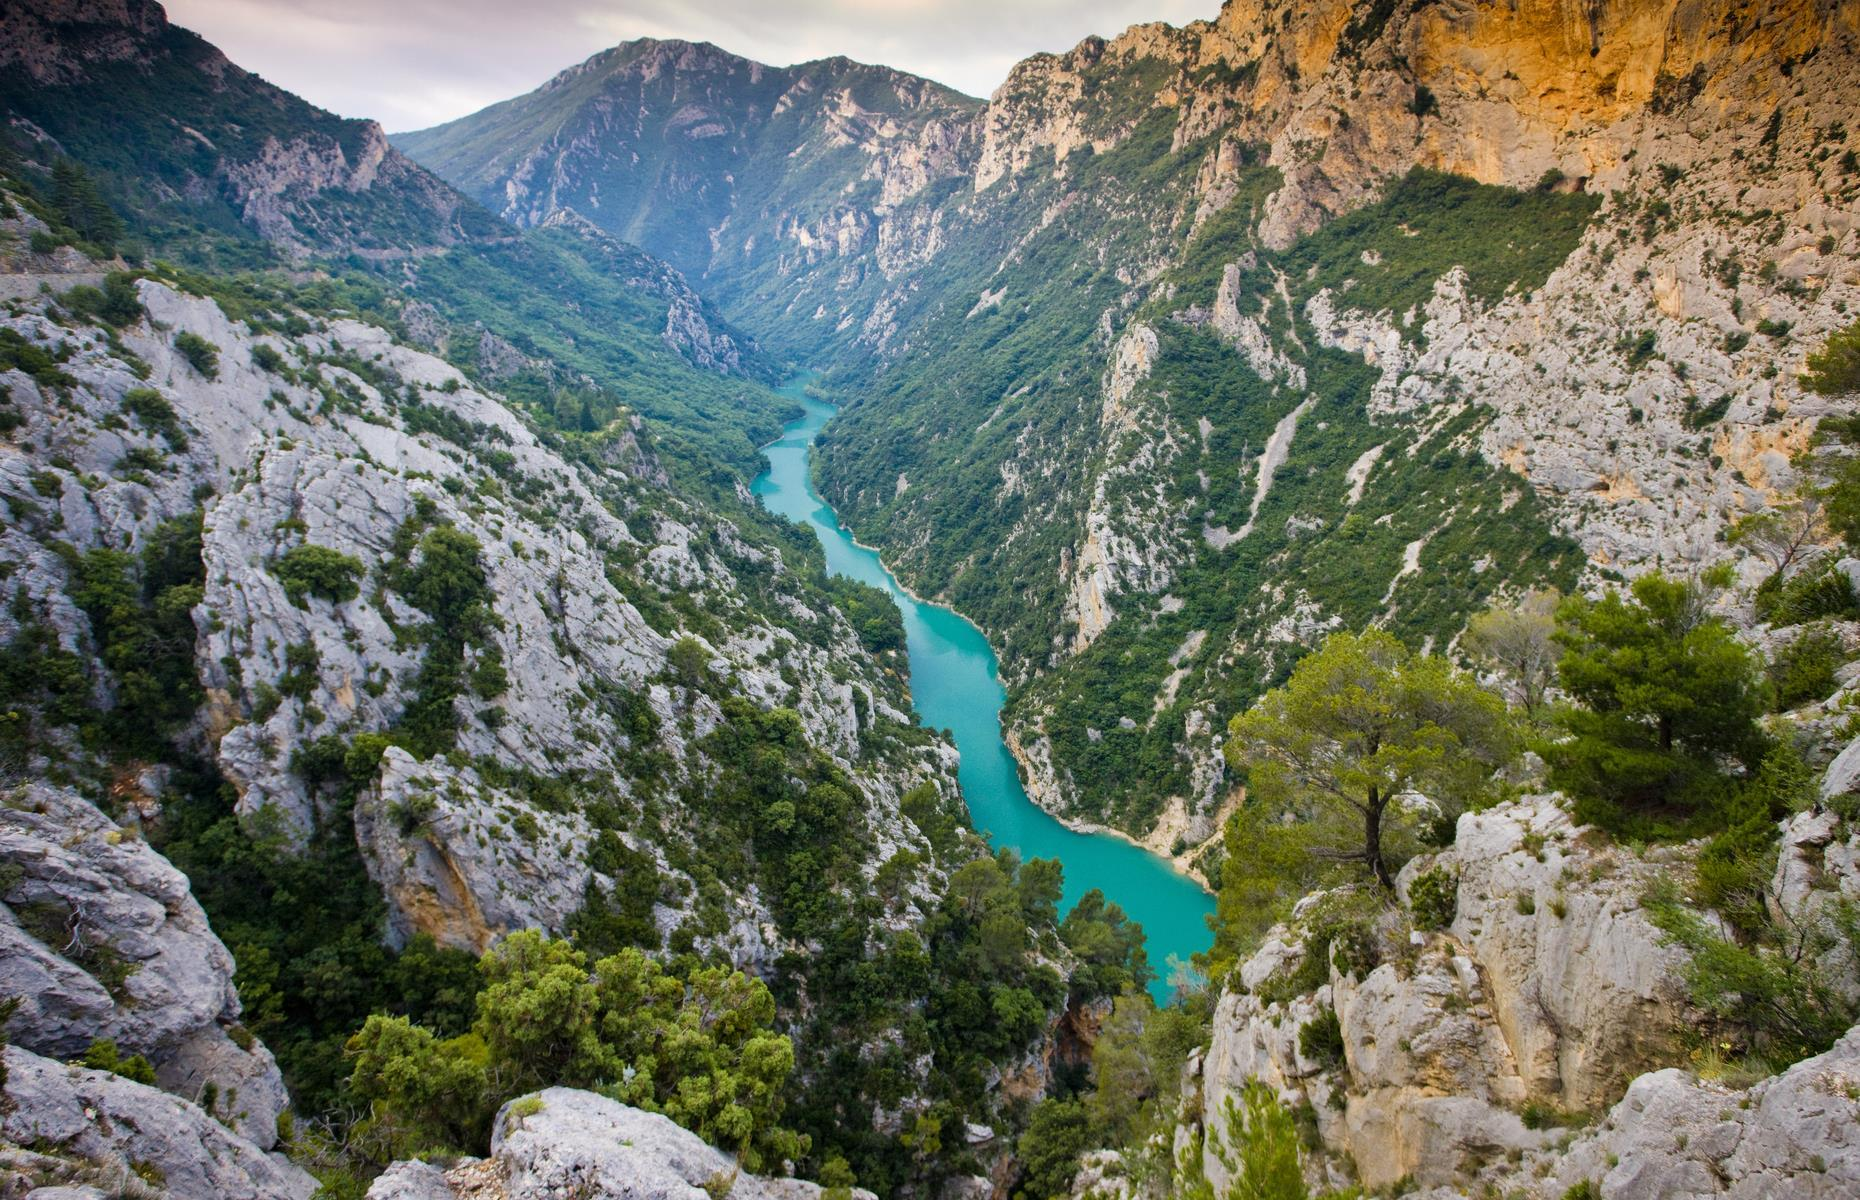 Slide 27 of 59: This theatrical limestone canyon appears to carry on endlessly into the horizon. Located in central Provence in southeastern France, the spectacular wonder dates back to the Ice Age. It was created when moving plates and glaciation shifted and melted the landscape to create the peaks and troughs we see today. Known as Verdon Gorge, the canyon takes its name from the French word for green and is famed for its lush forests and dazzling river that's almost too blue to be true.